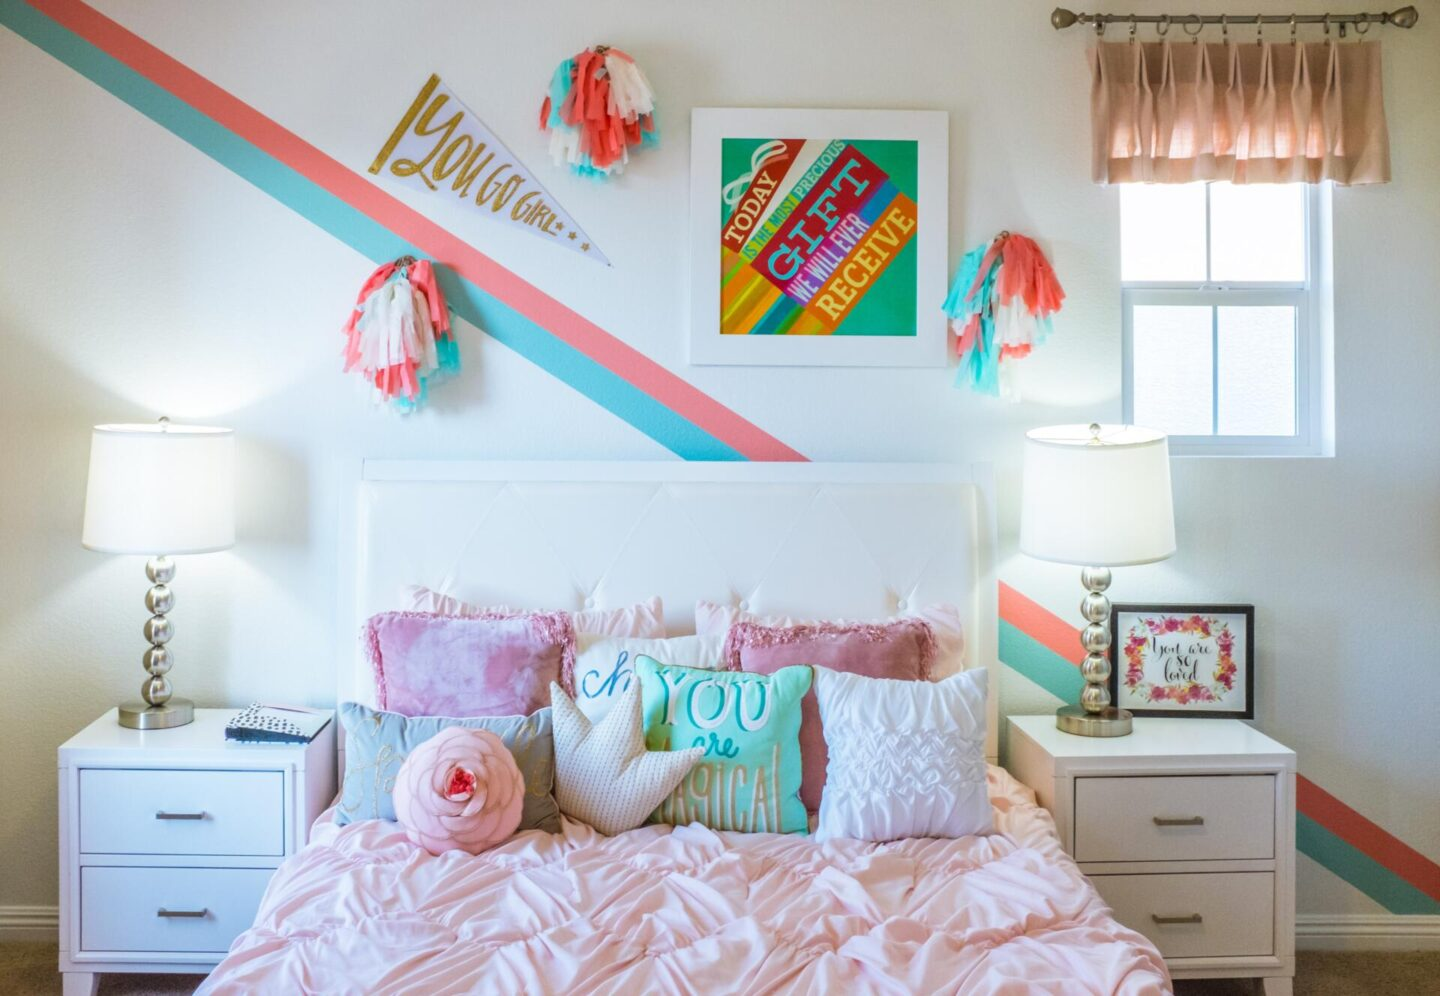 4 helpful ways to make your child's bedroom a little safer